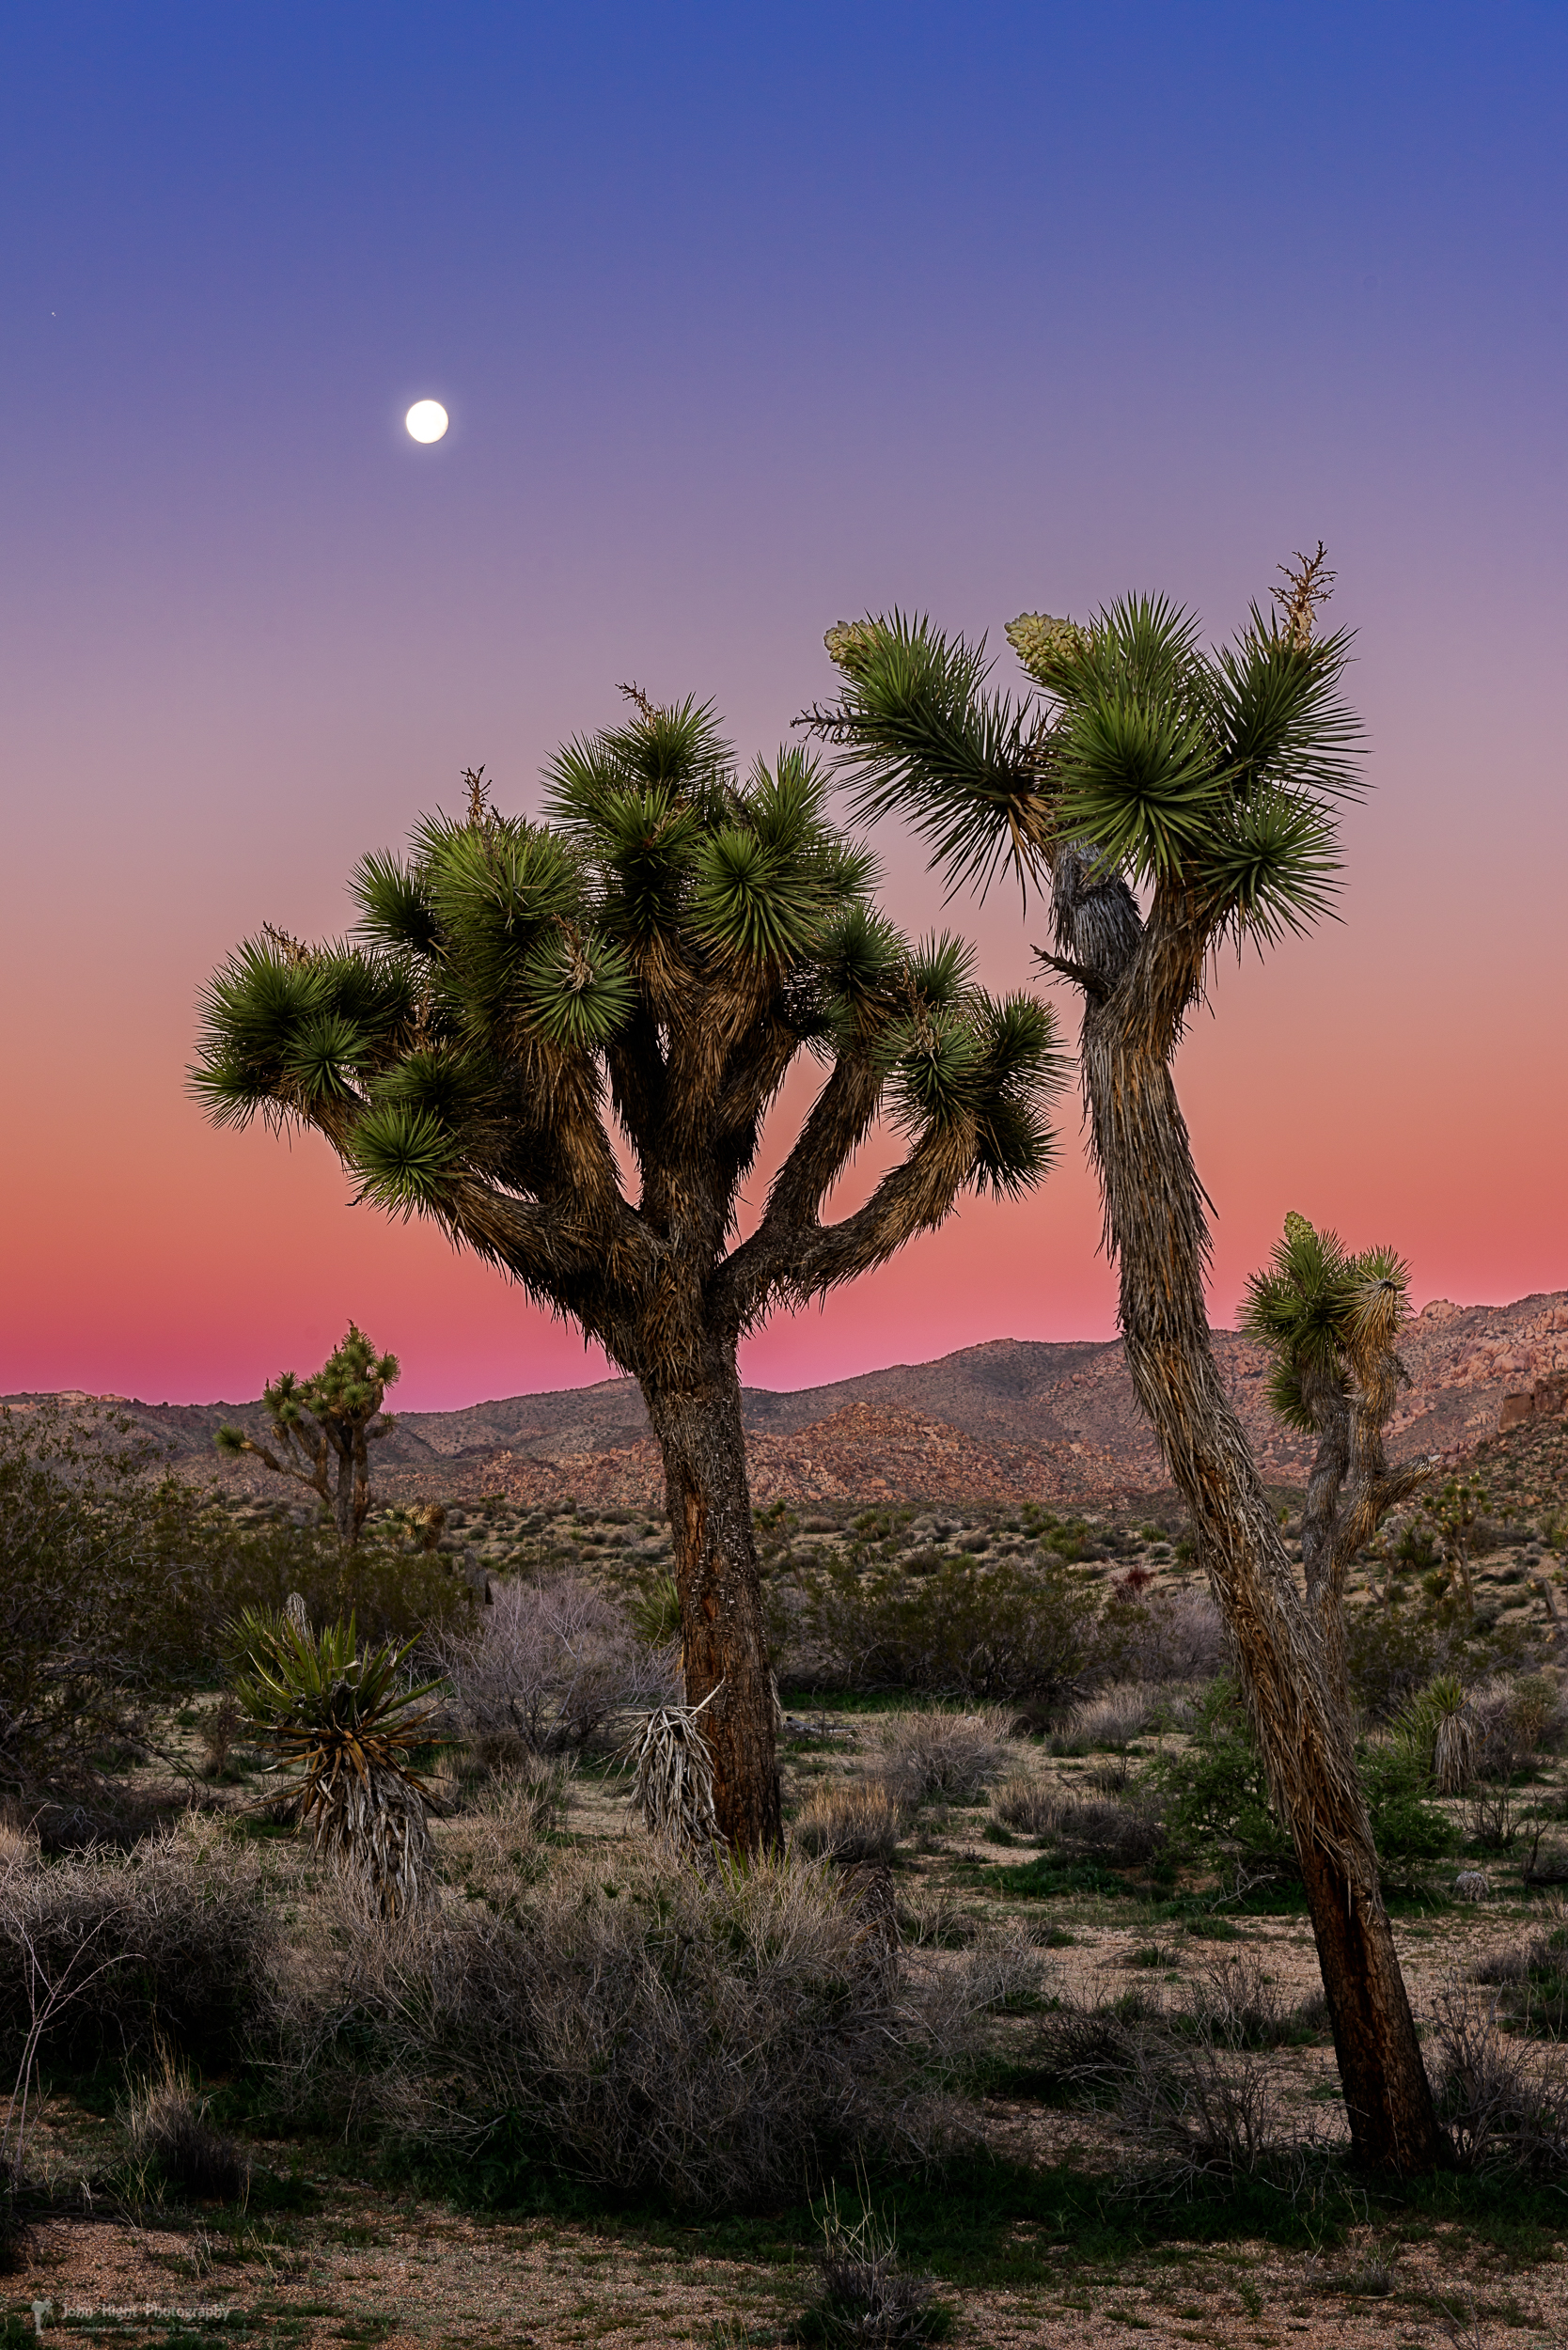 Moon Over Joshua Tree